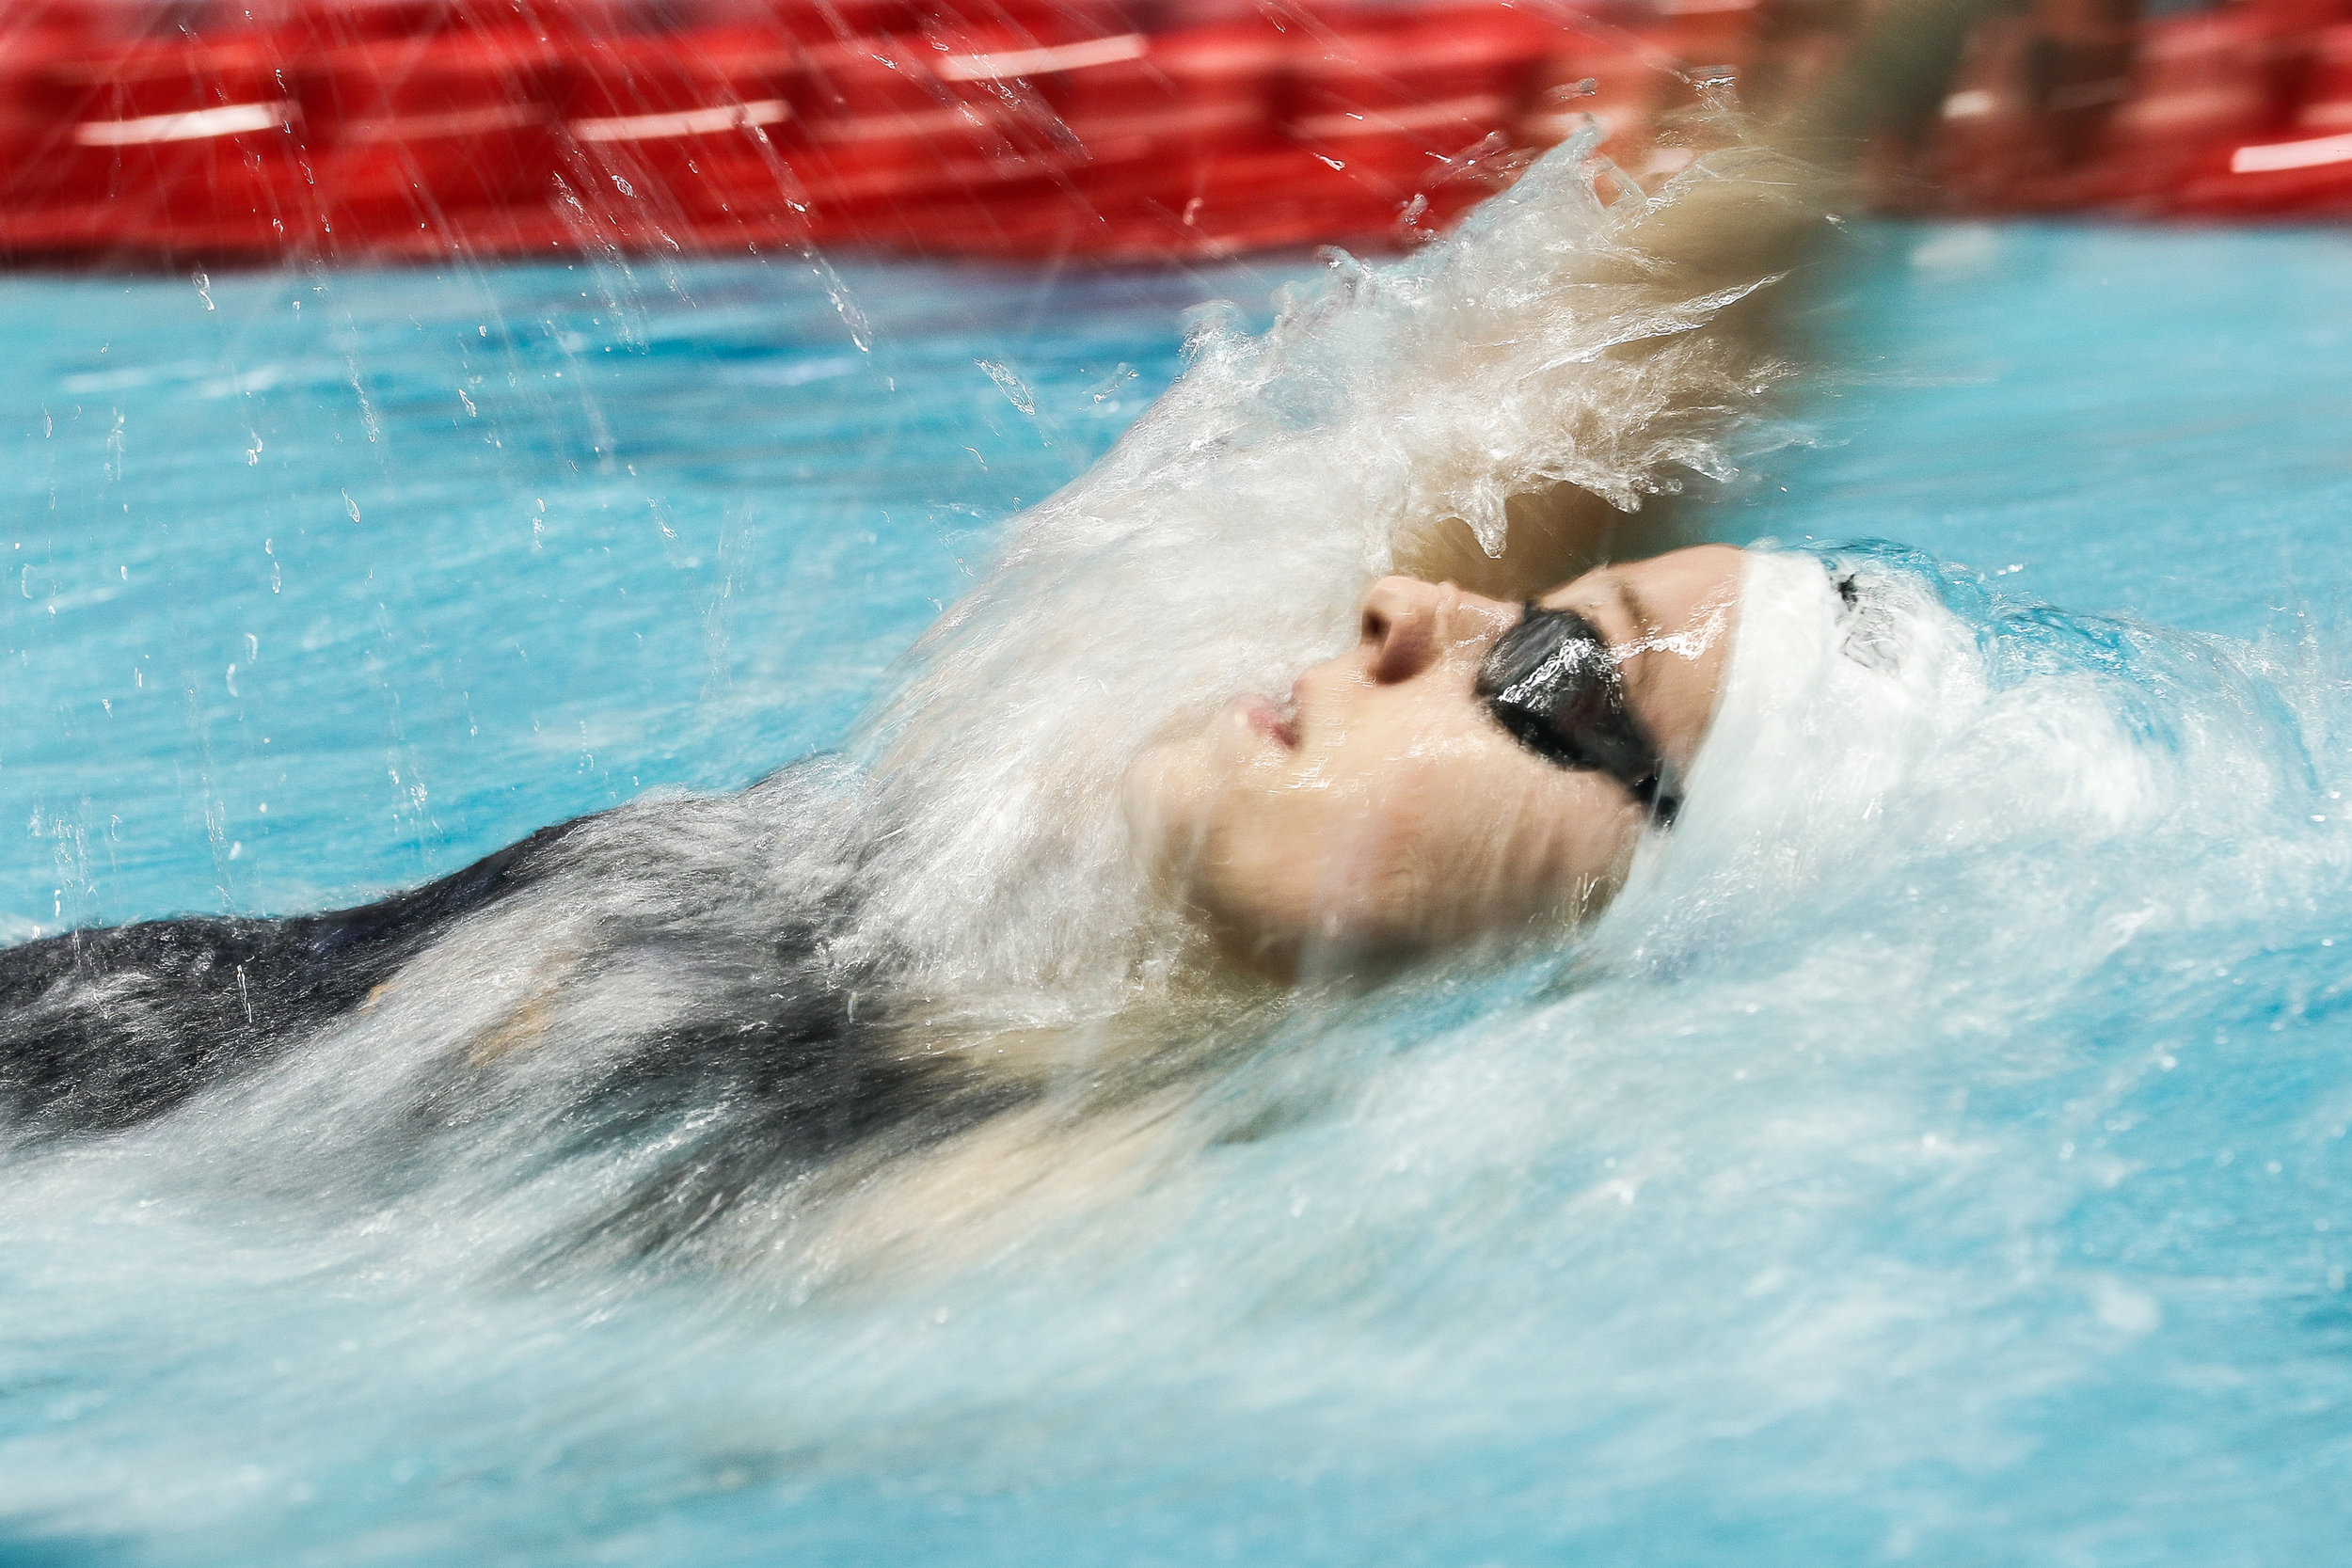 A member of the women's University of Tennessee swim team competes during day two of the SEC Swimming and Diving Championship in Athens, Ga., on Wednesday, Feb. 20, 2019.